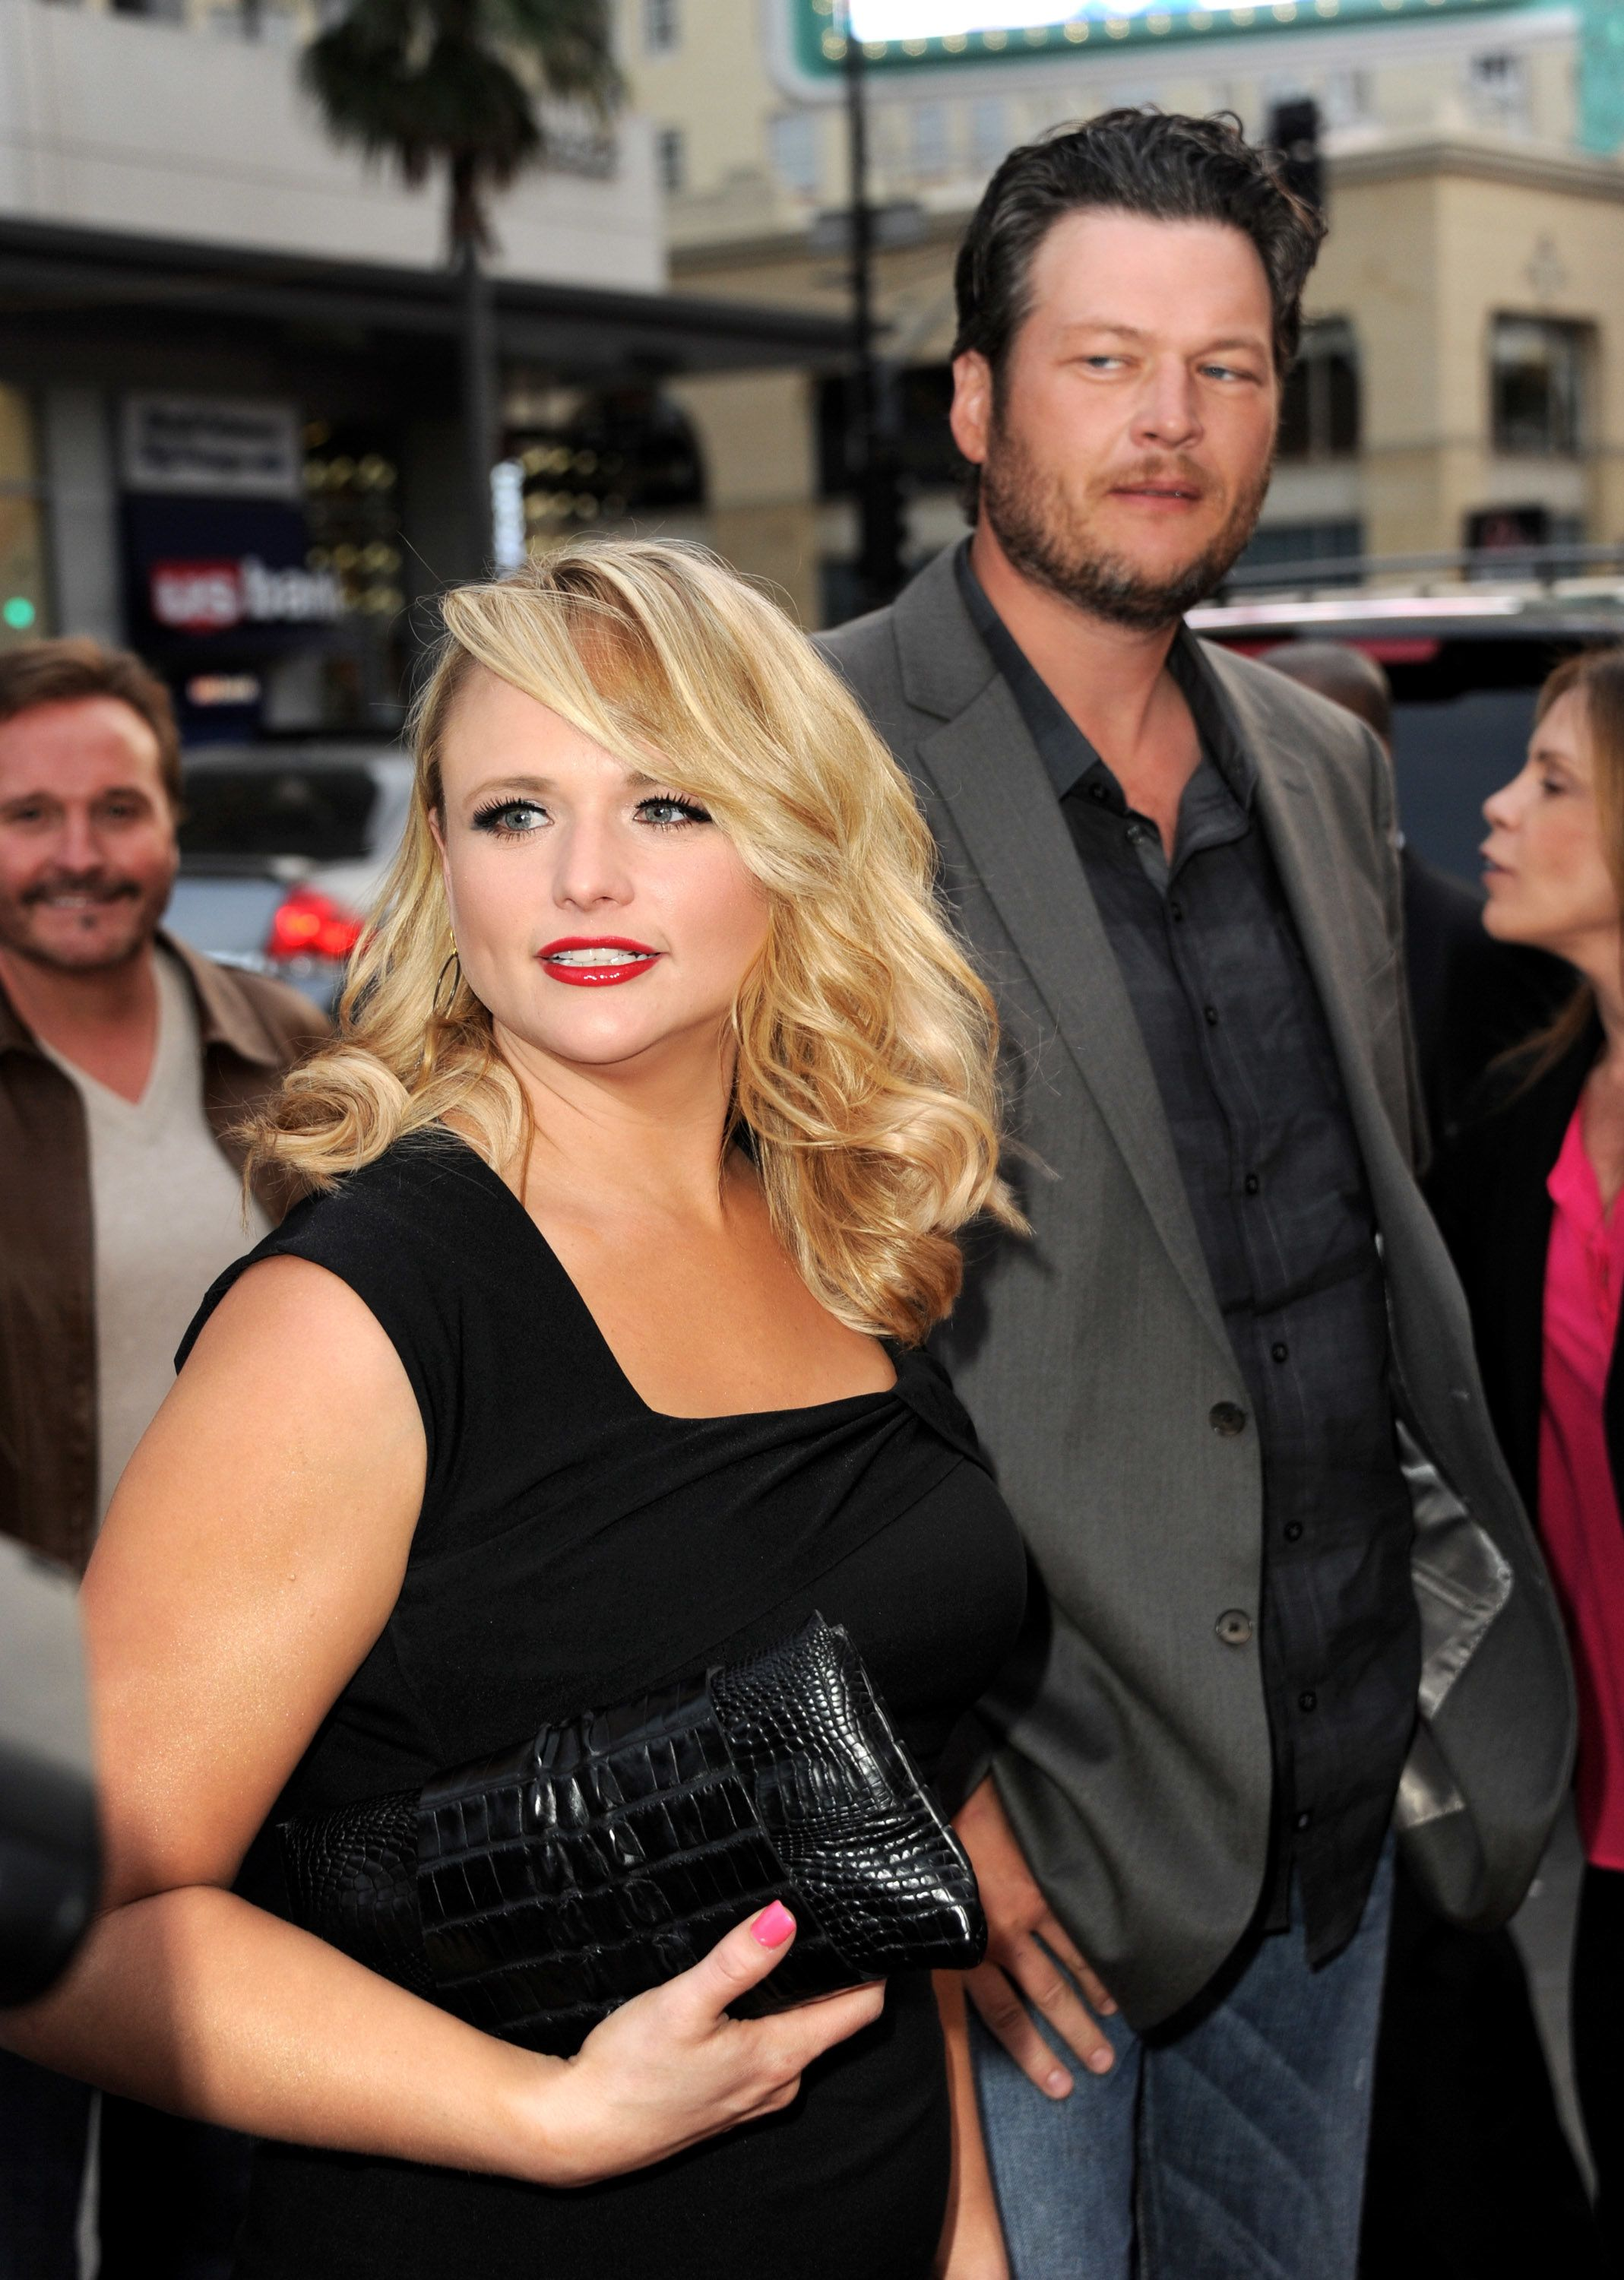 LOS ANGELES, CA - MARCH 20:  Singers Miranda Lambert (L) and her husband Blake Shelton arrive at a screening of NBC's 'The Voice' Season 4 at the Chinese Theatre on March 20, 2013 in Los Angeles, California.  (Photo by Kevin Winter/Getty Images)